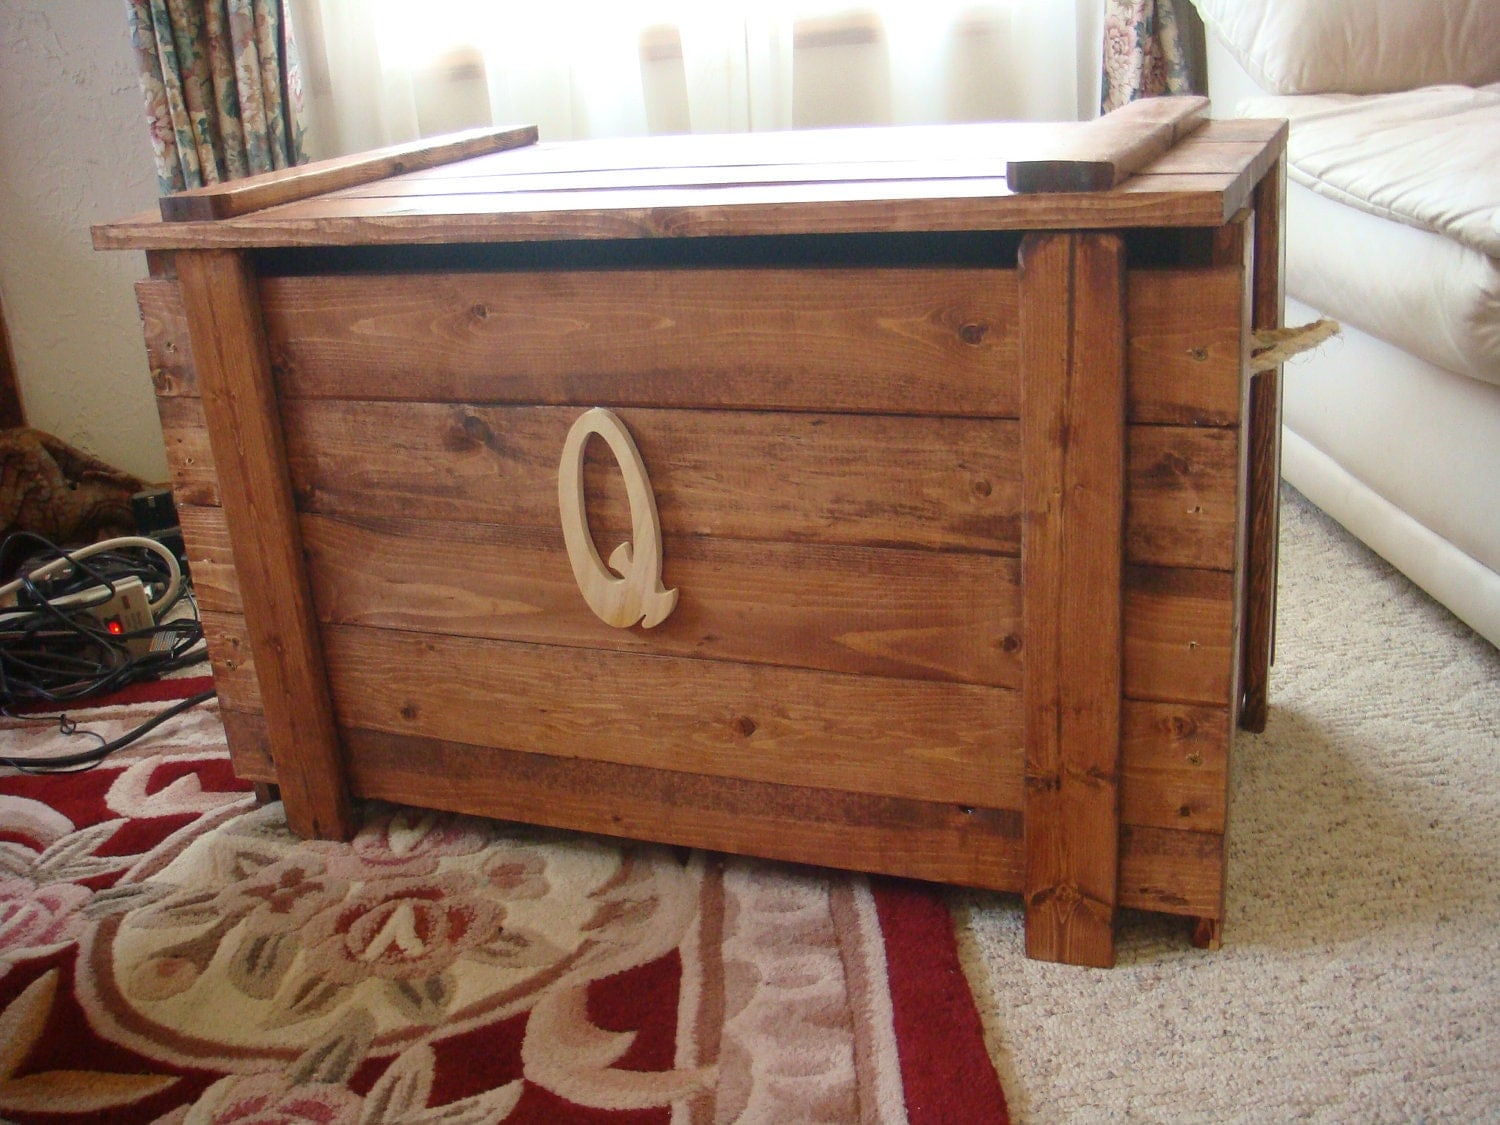 handmade wooden toy chest